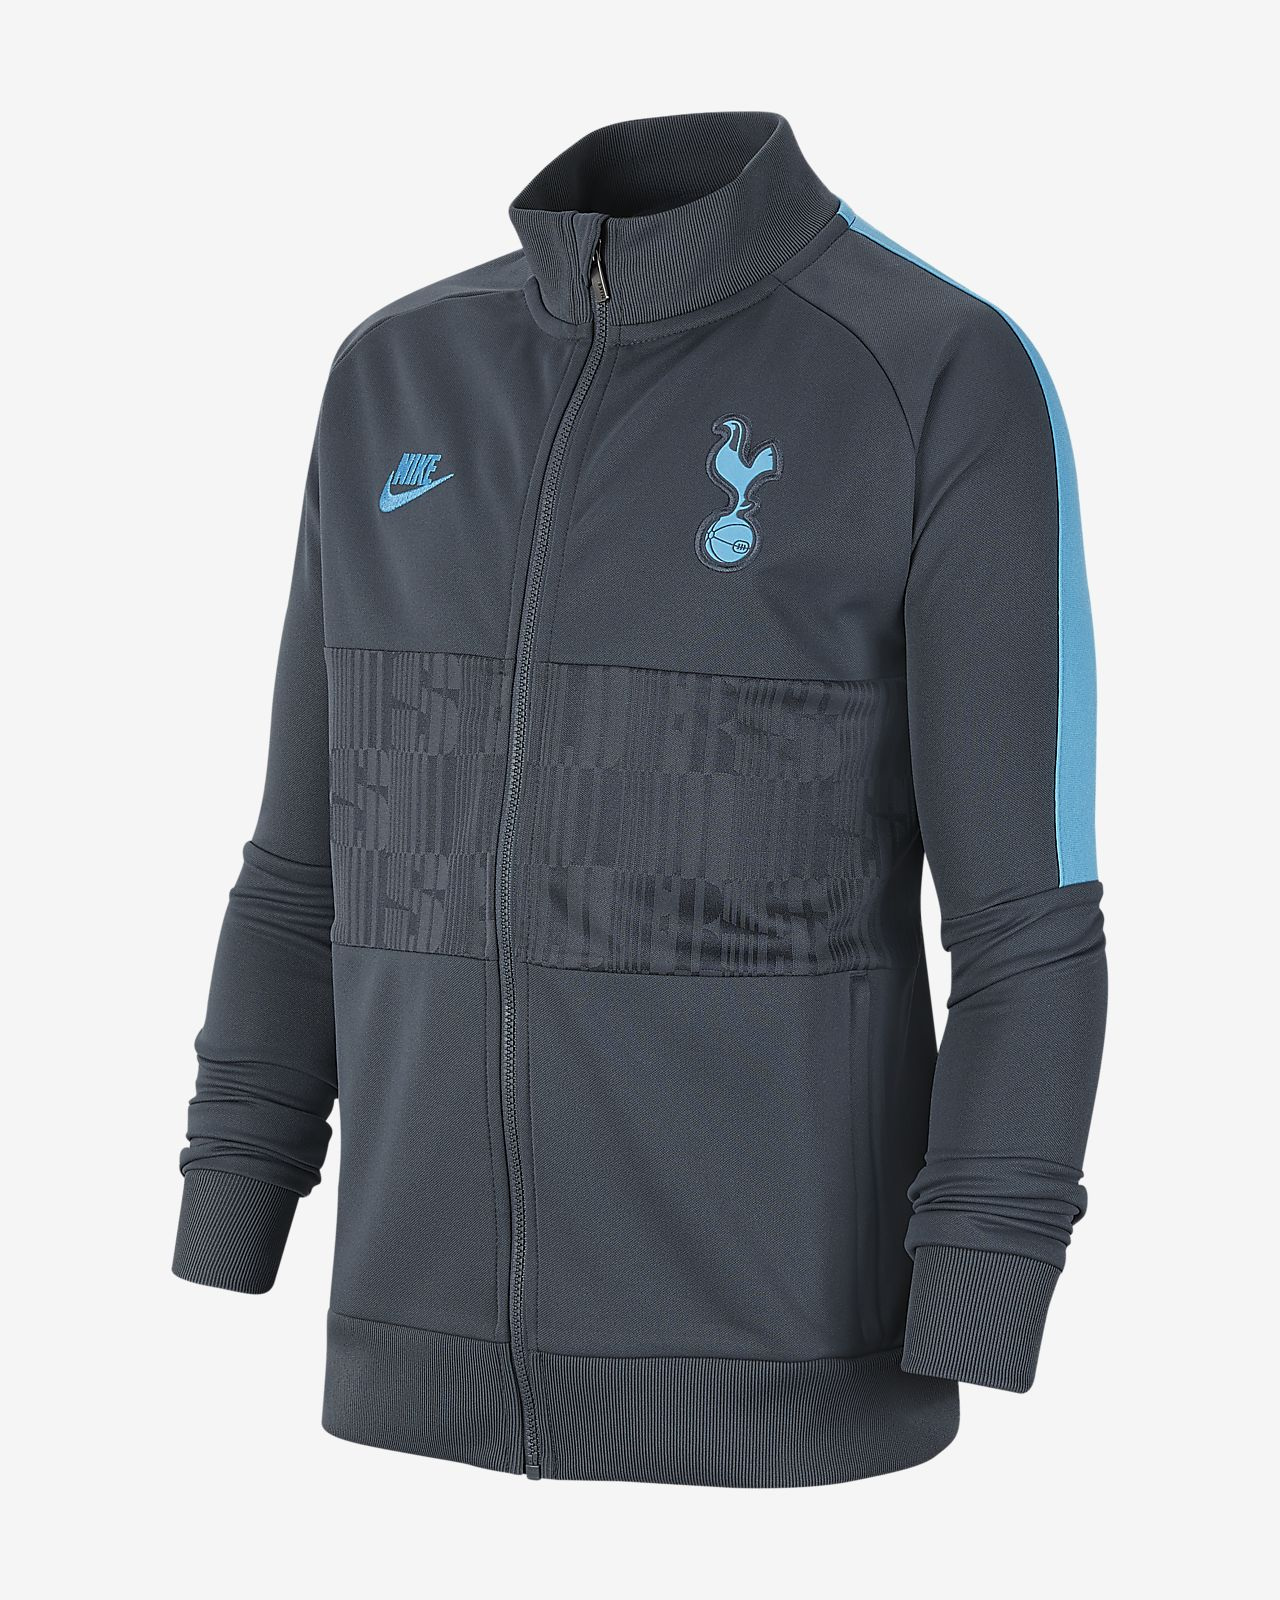 Tottenham Hotspur Older Kids' Jacket